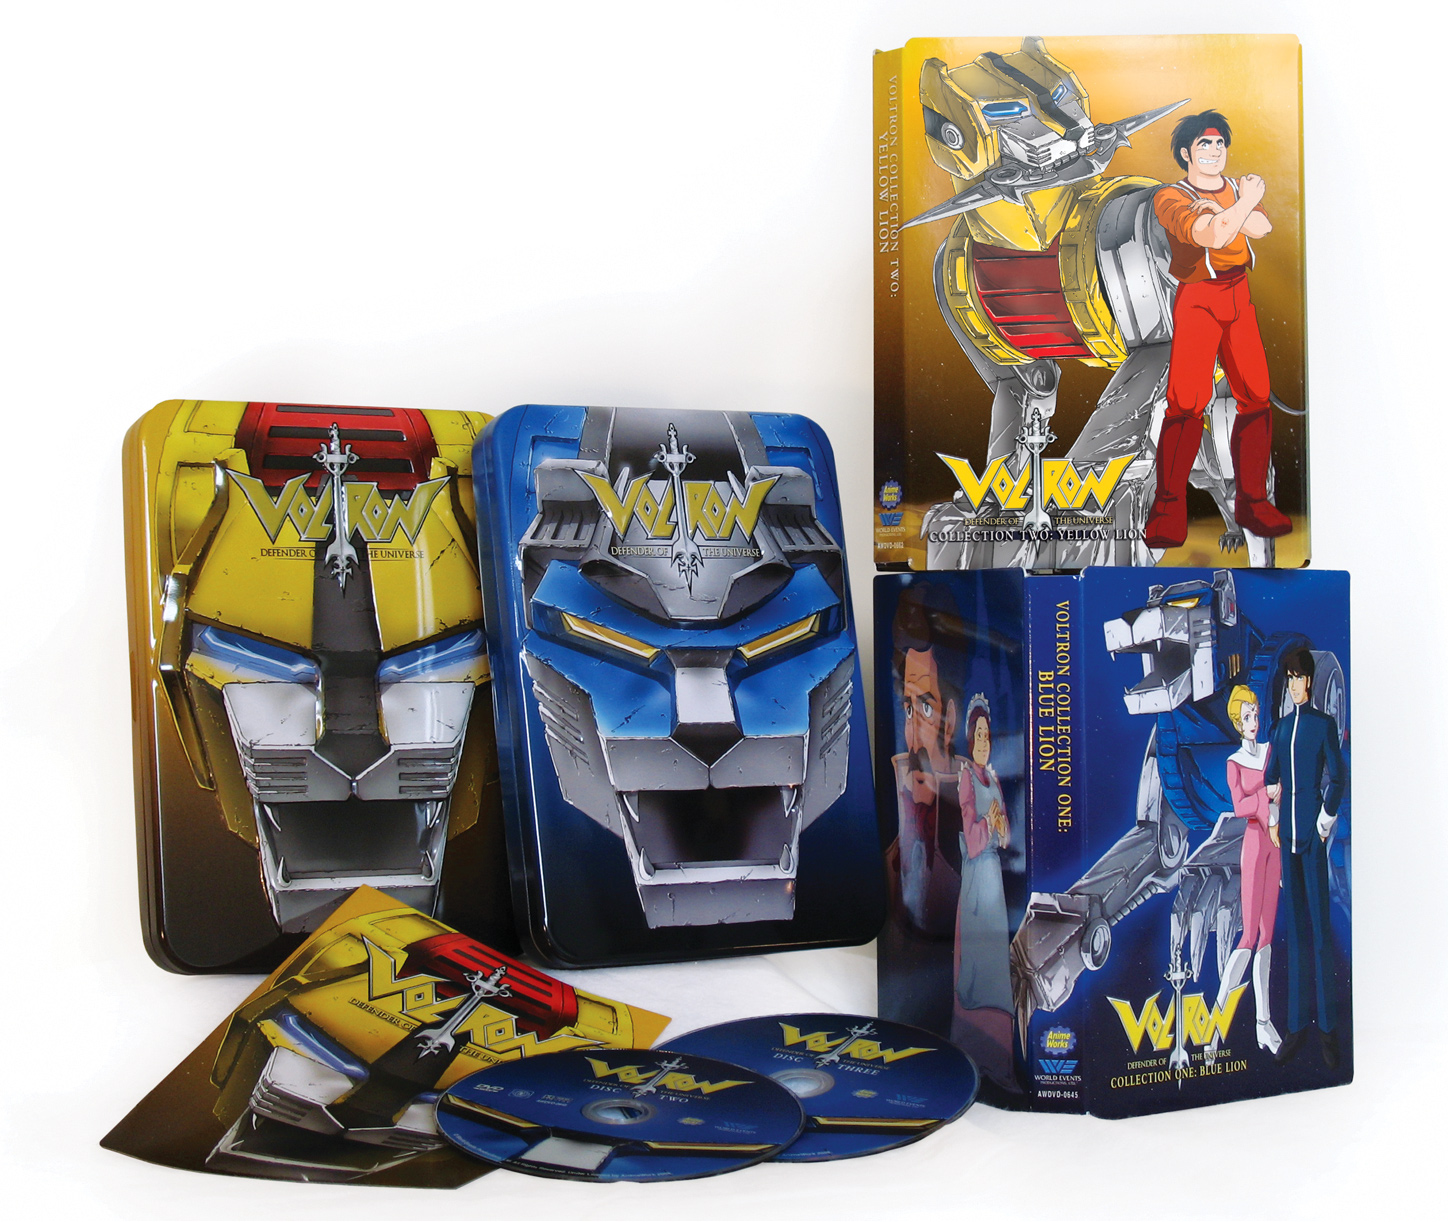 Voltron tins with Digi pack